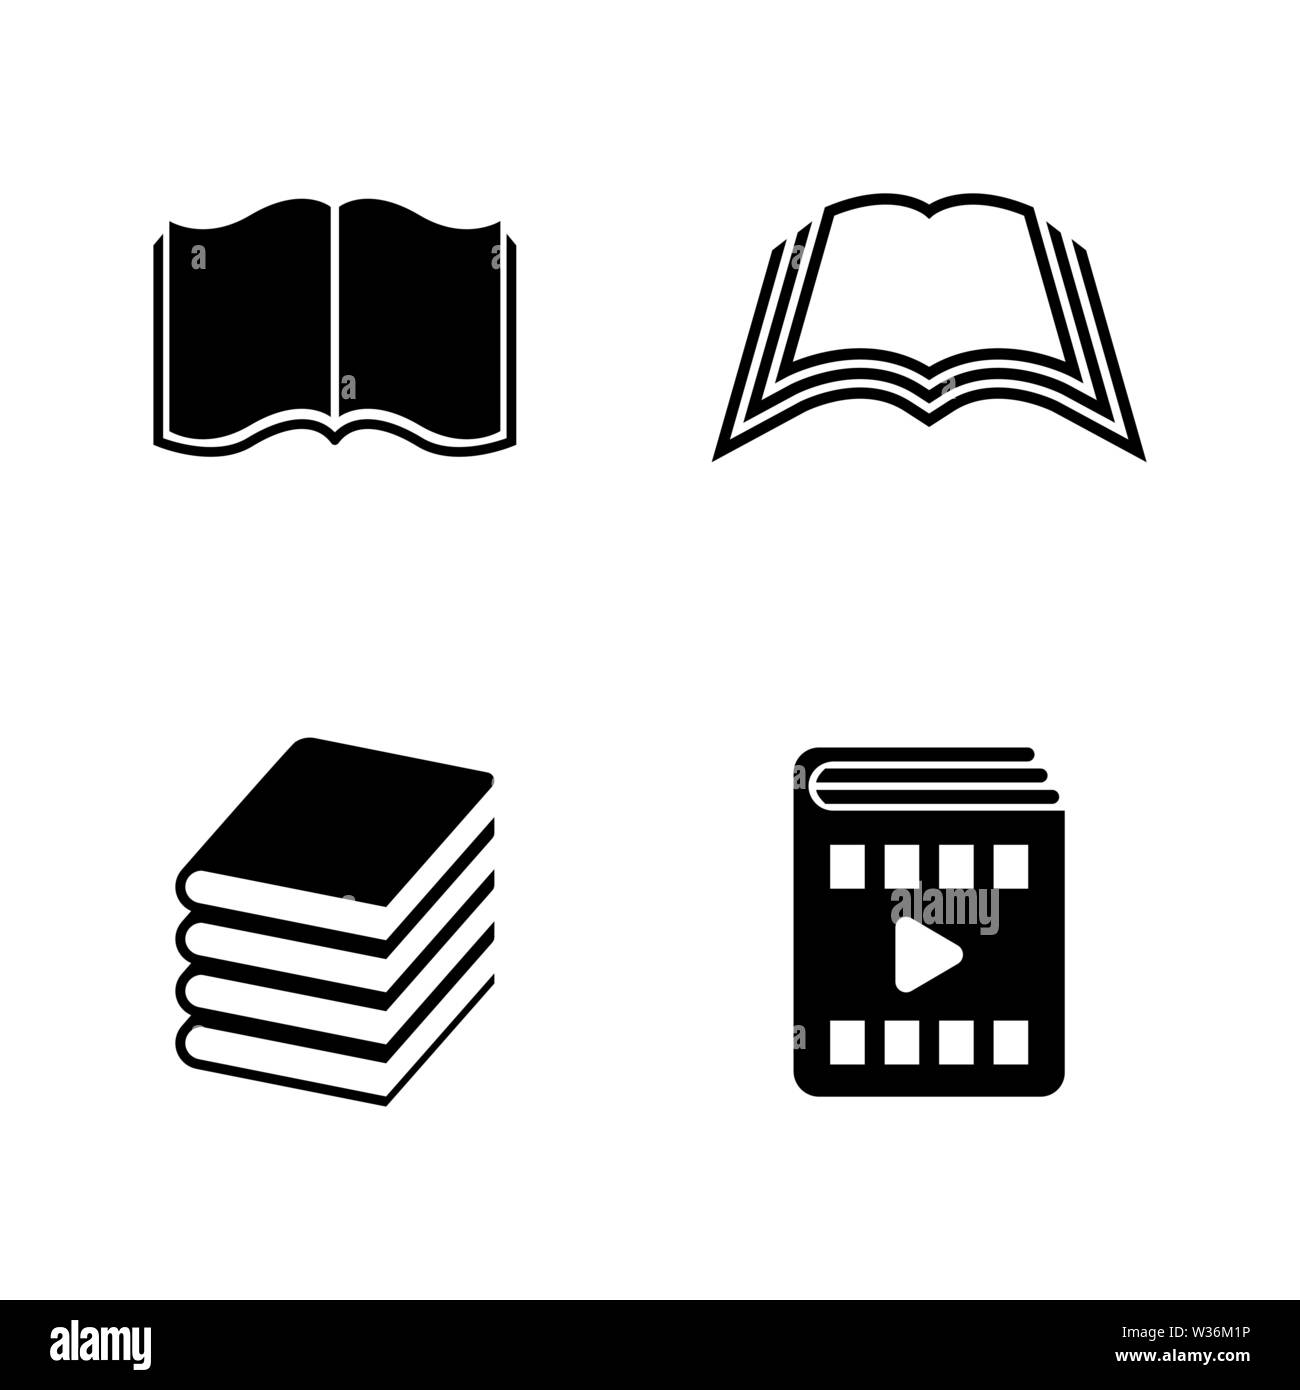 Book. Simple Related Vector Icons Set for Video, Mobile Apps, Web Sites, Print Projects and Your Design. Black Flat Illustration on White Background. - Stock Image